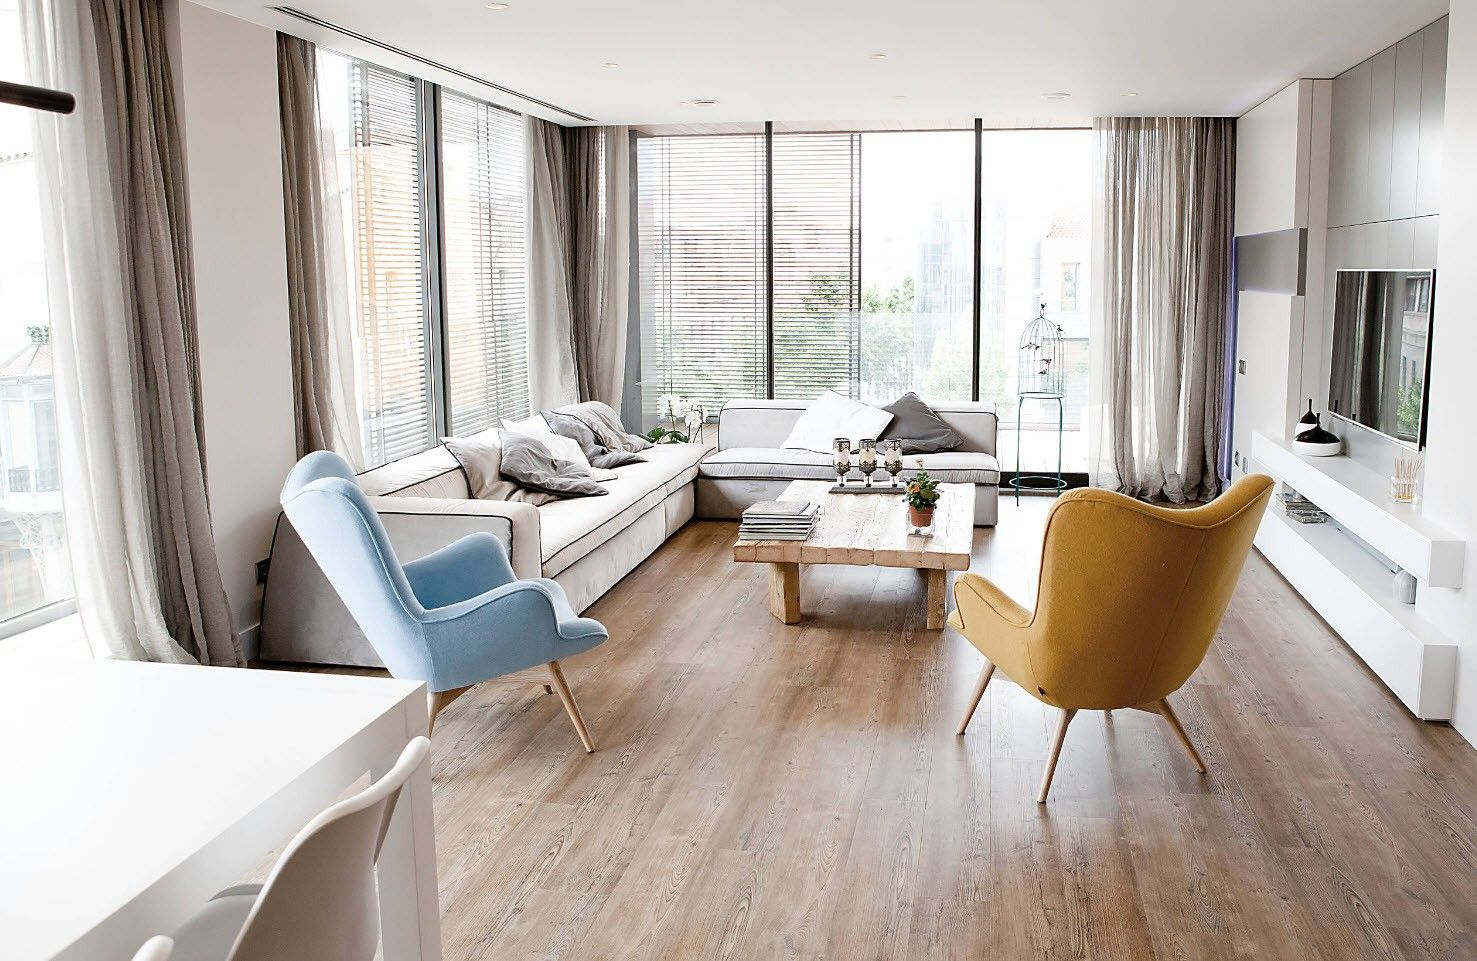 Contemporary Scandi style for sun lit open layout apartment